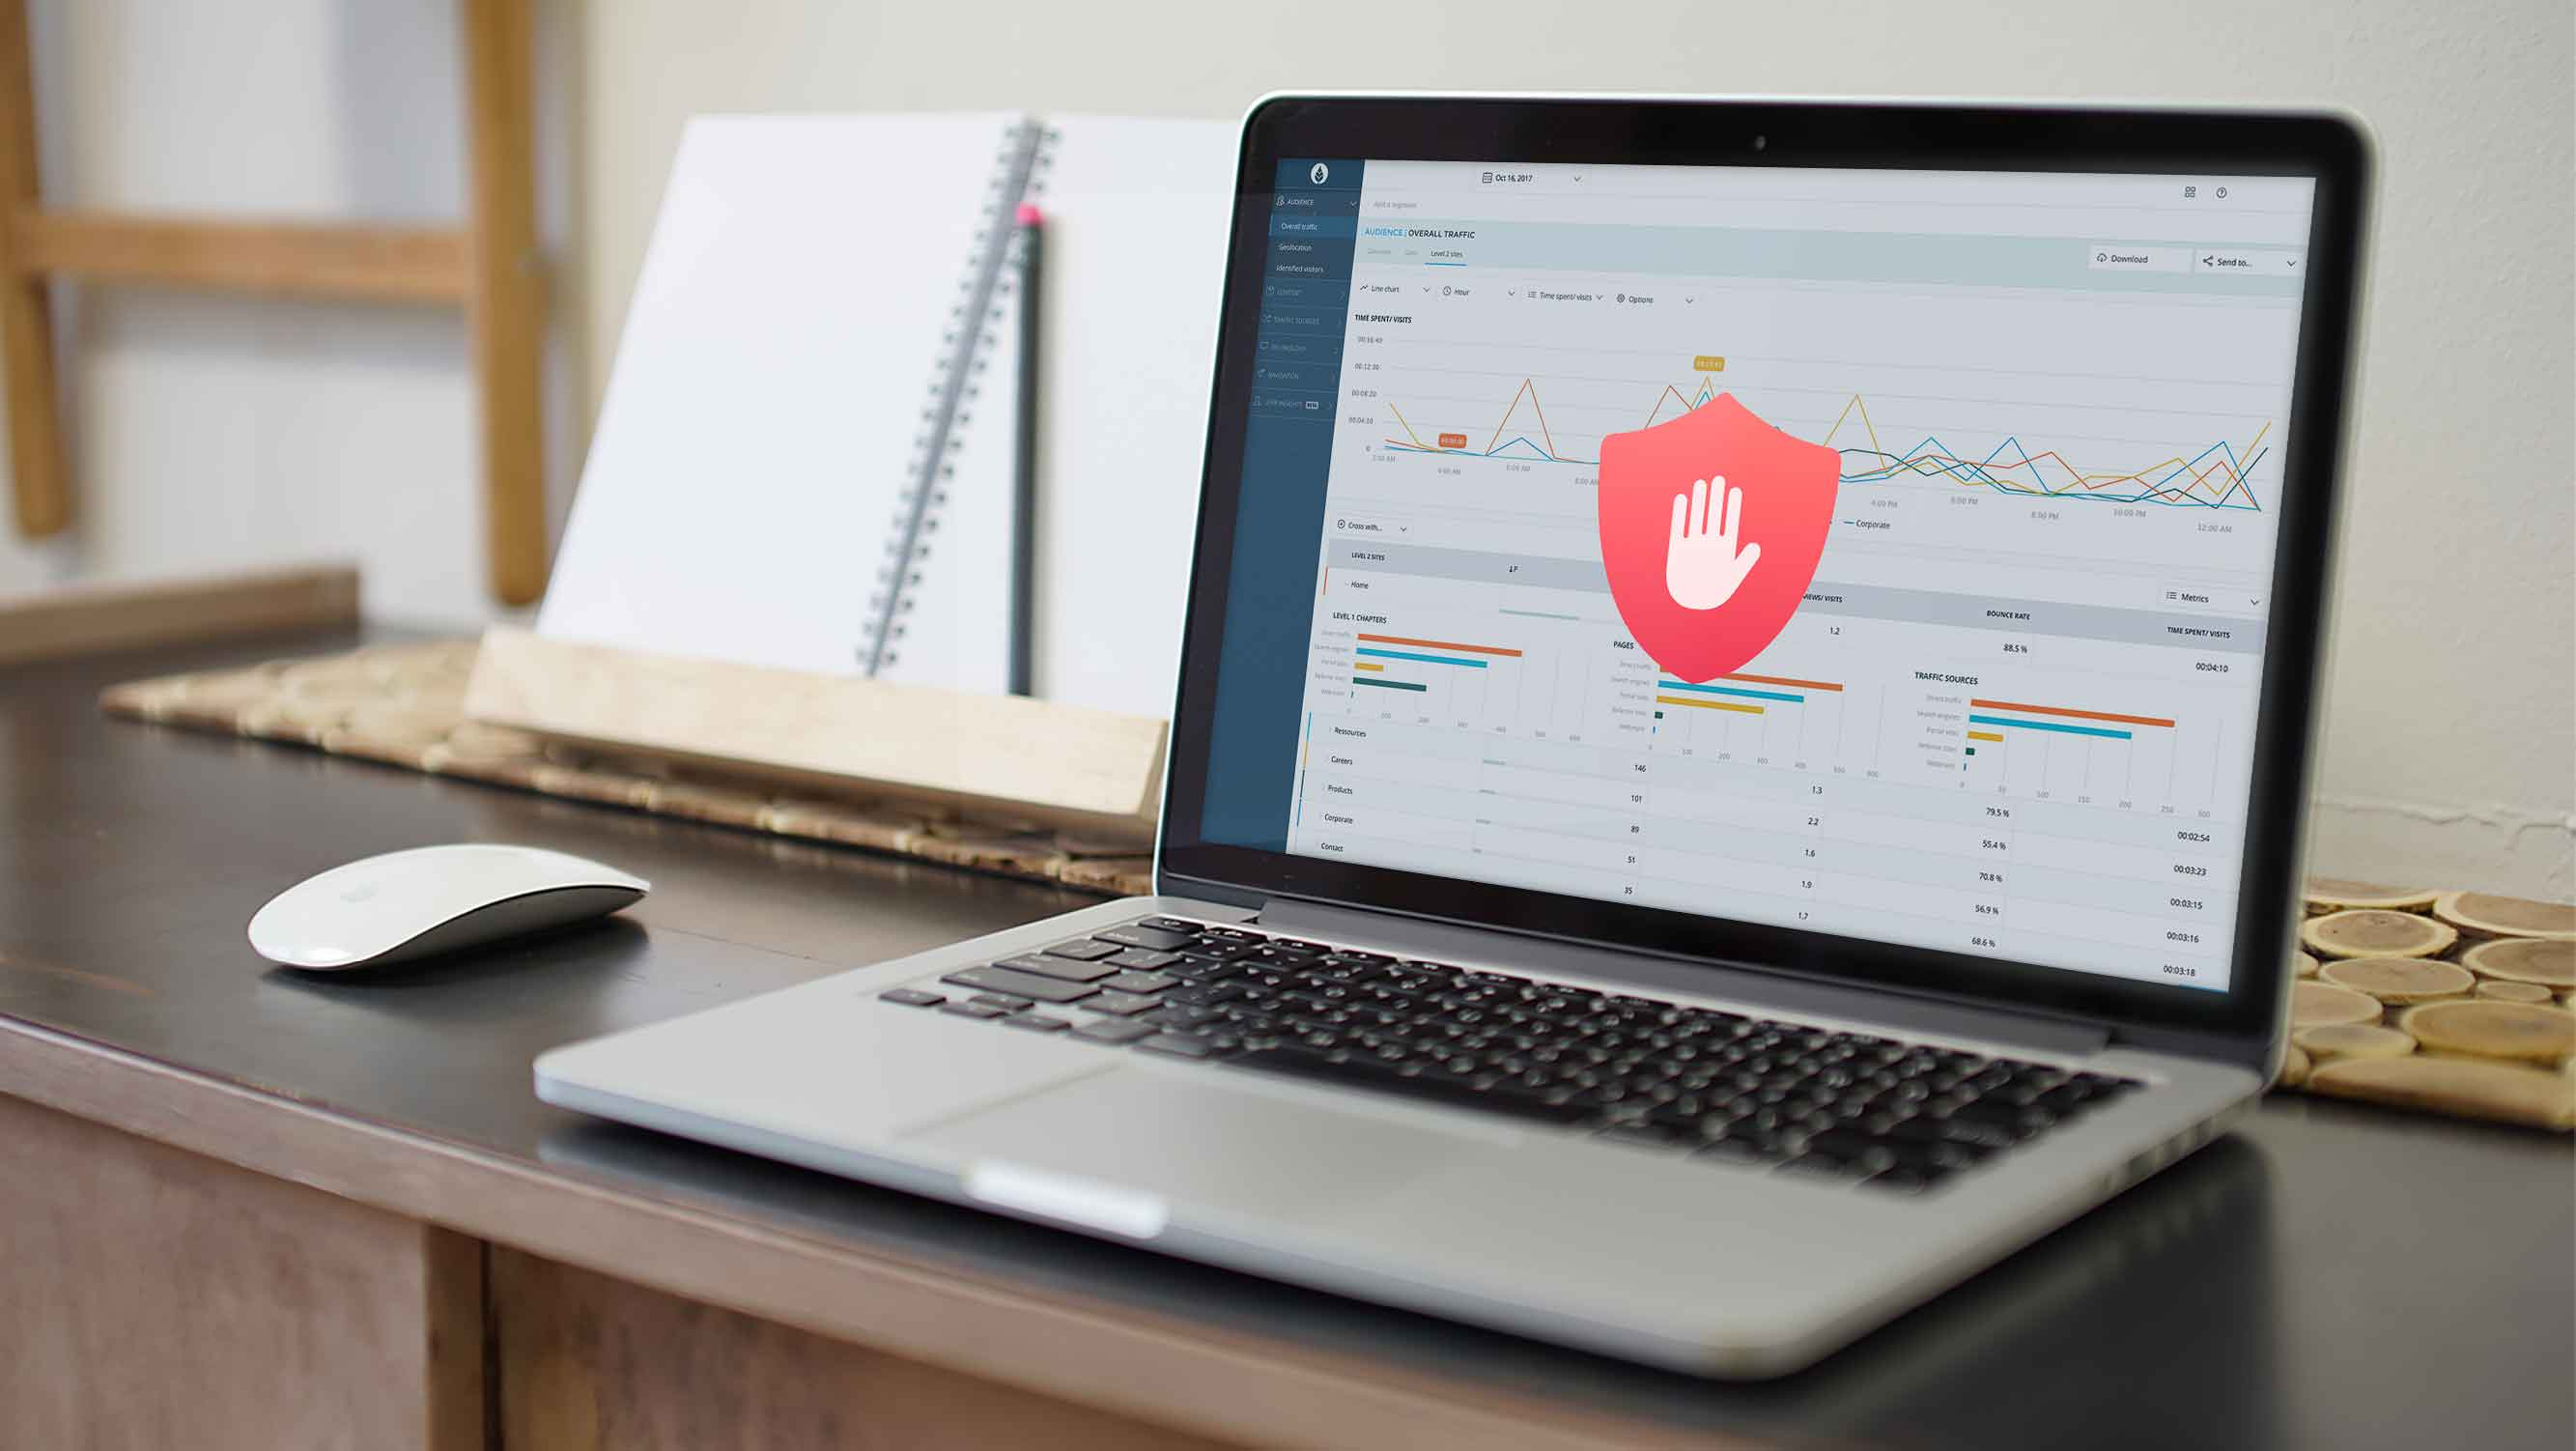 What impact do ad blockers have on web analytics tracking?